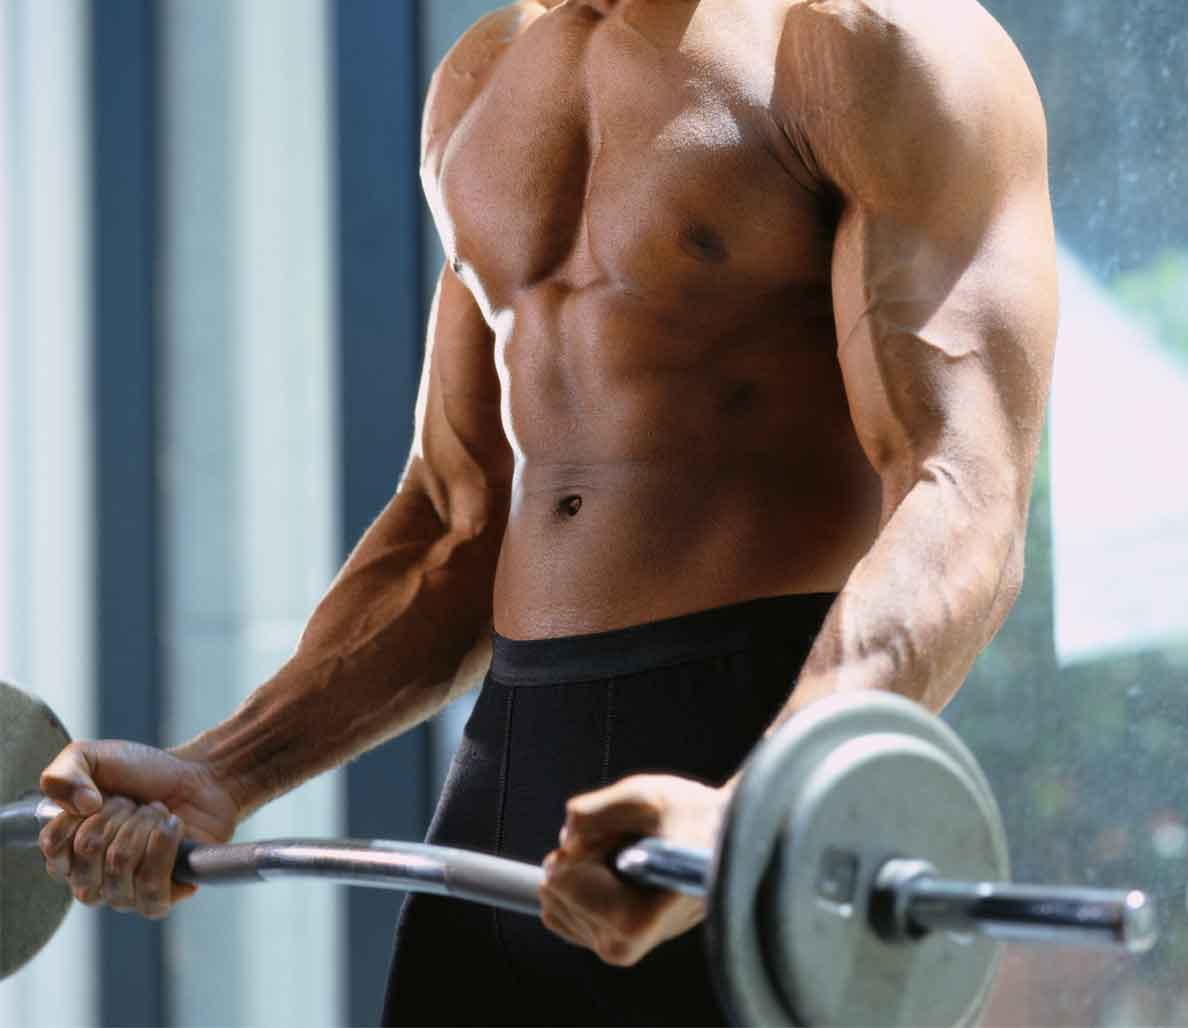 Fitness Expert Advice on Building Bigger Arms